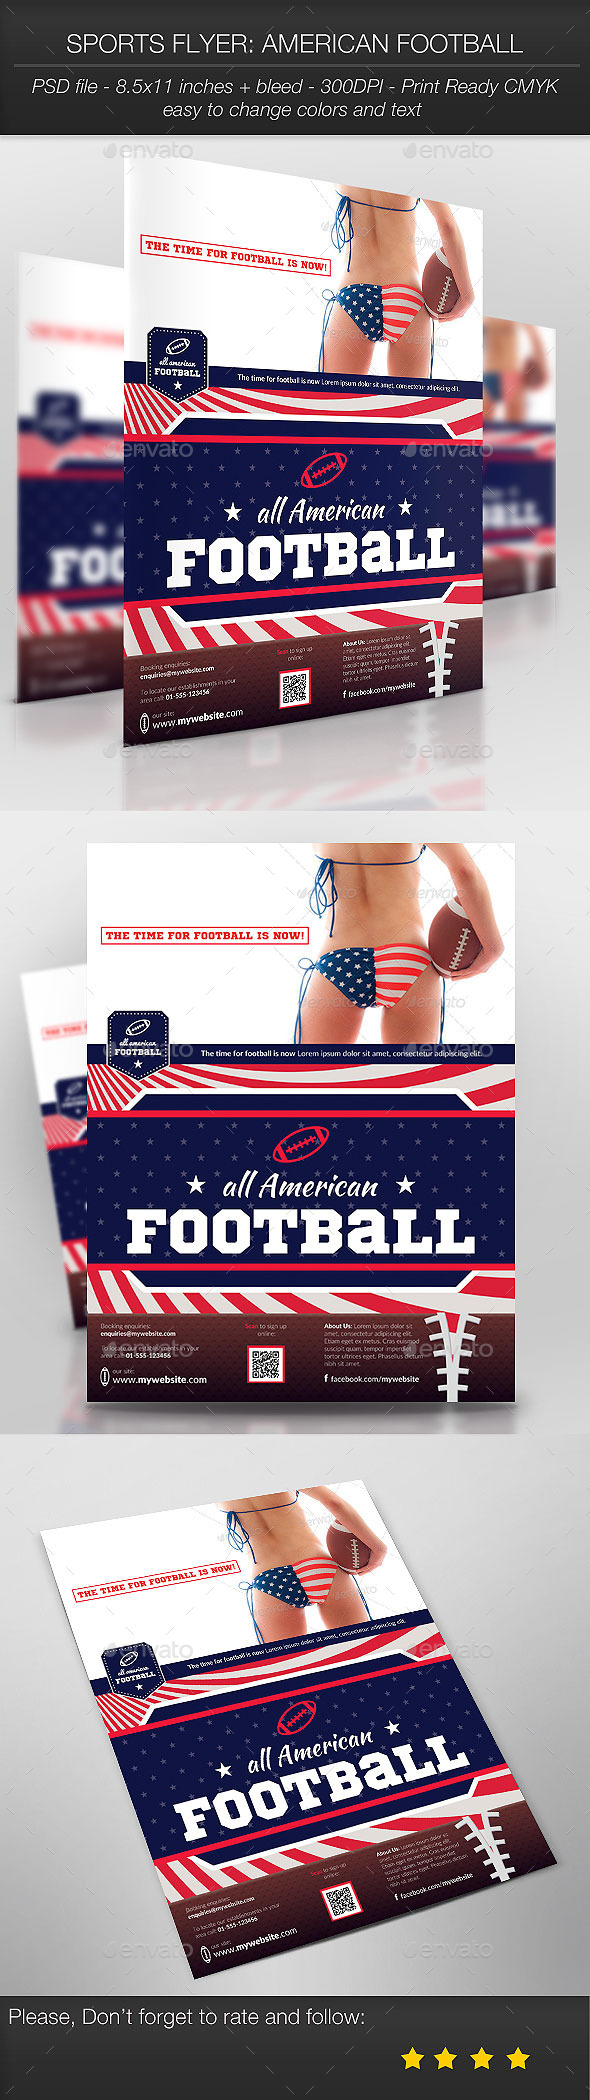 GraphicRiver Sports Flyer American Football 9451488